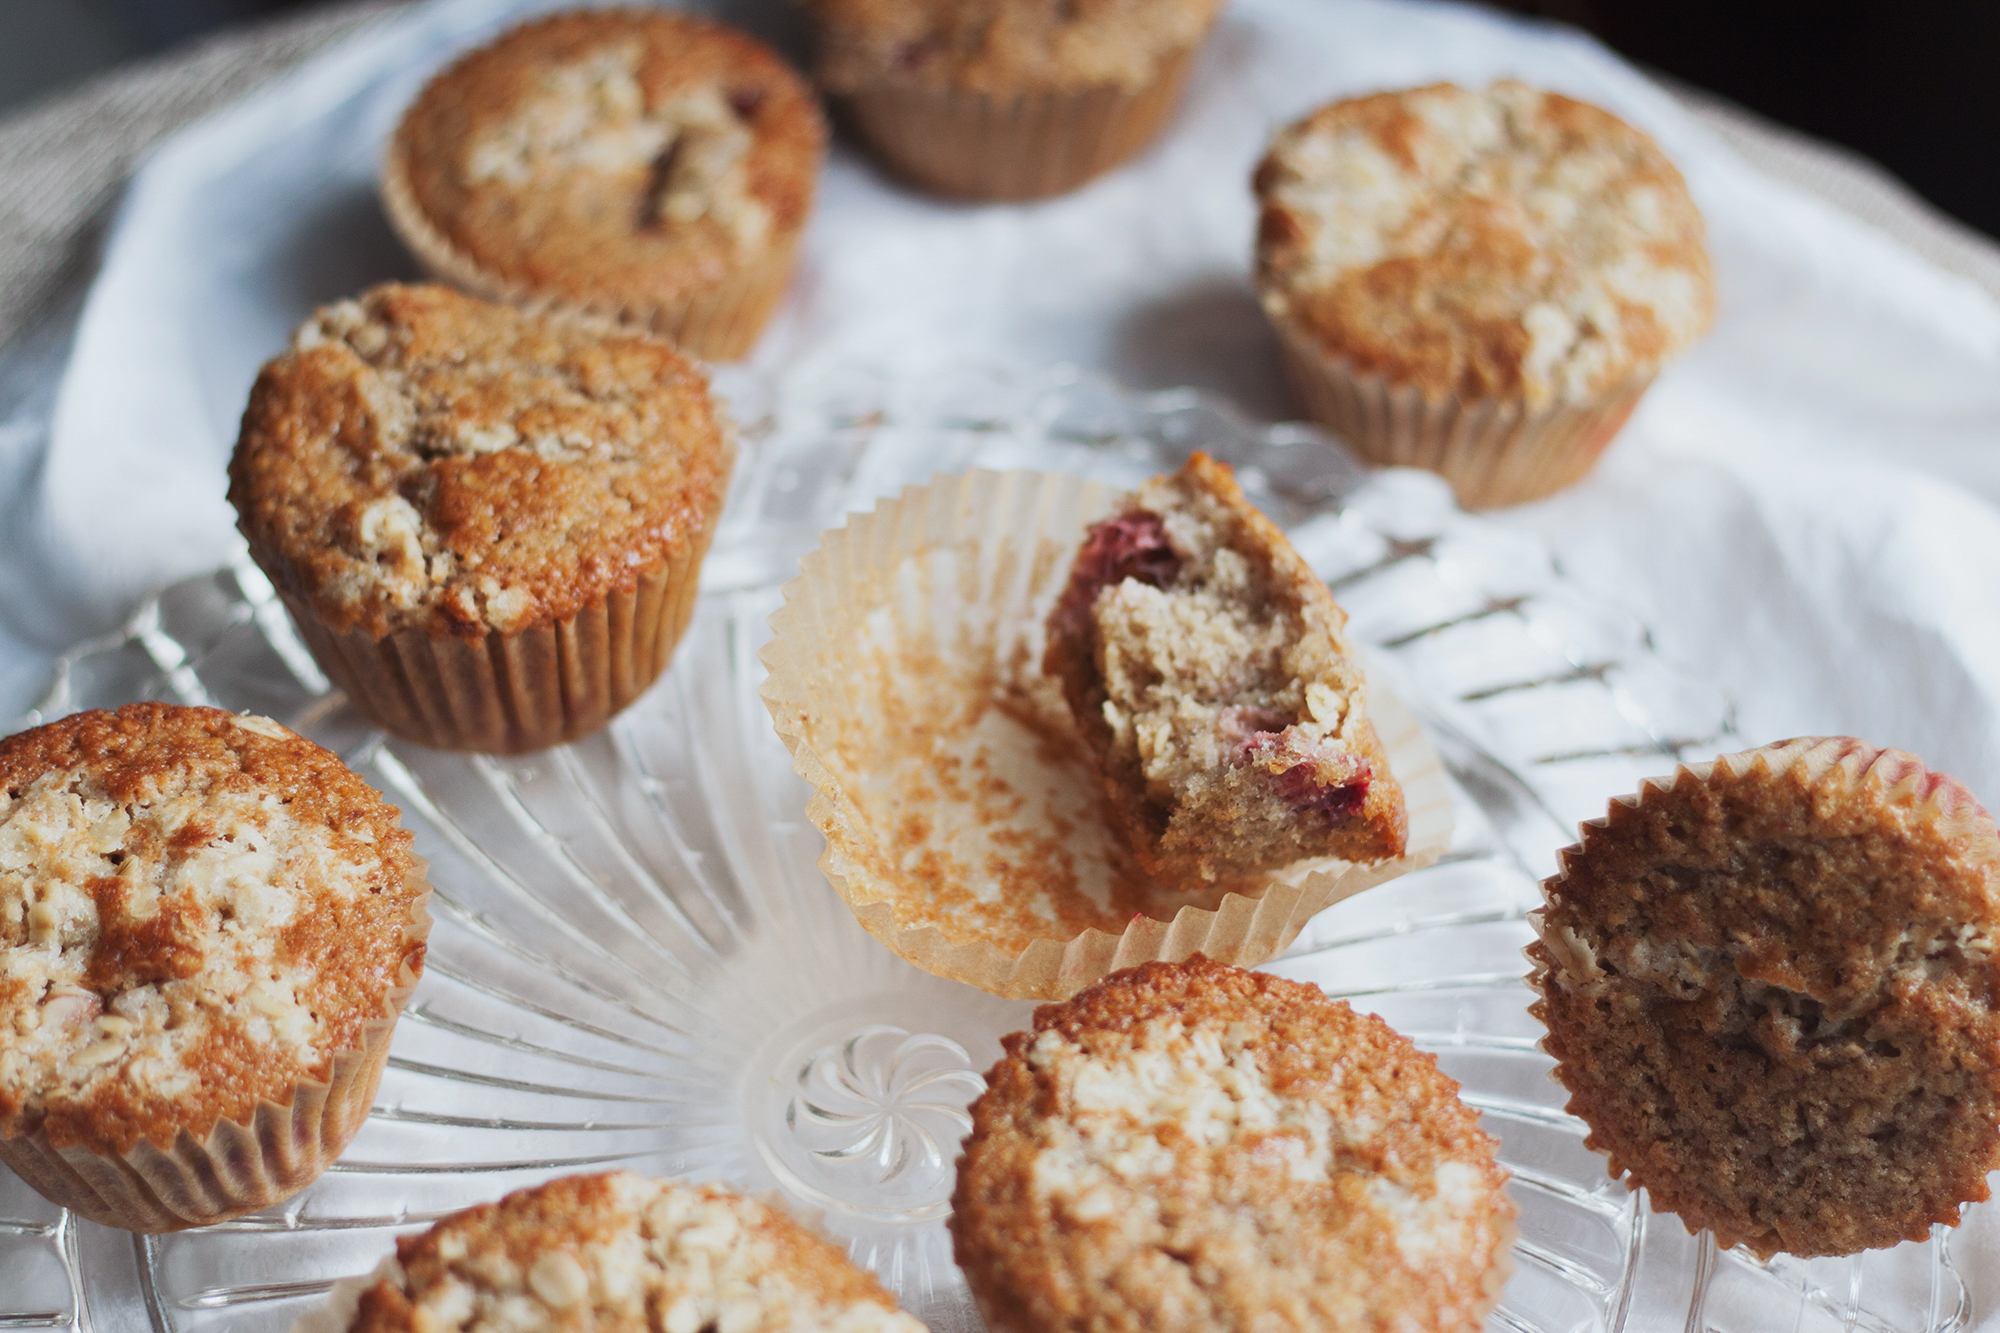 strawberry einkorn oat muffins made with einkorn, oat, and almond flour via will frolic for food